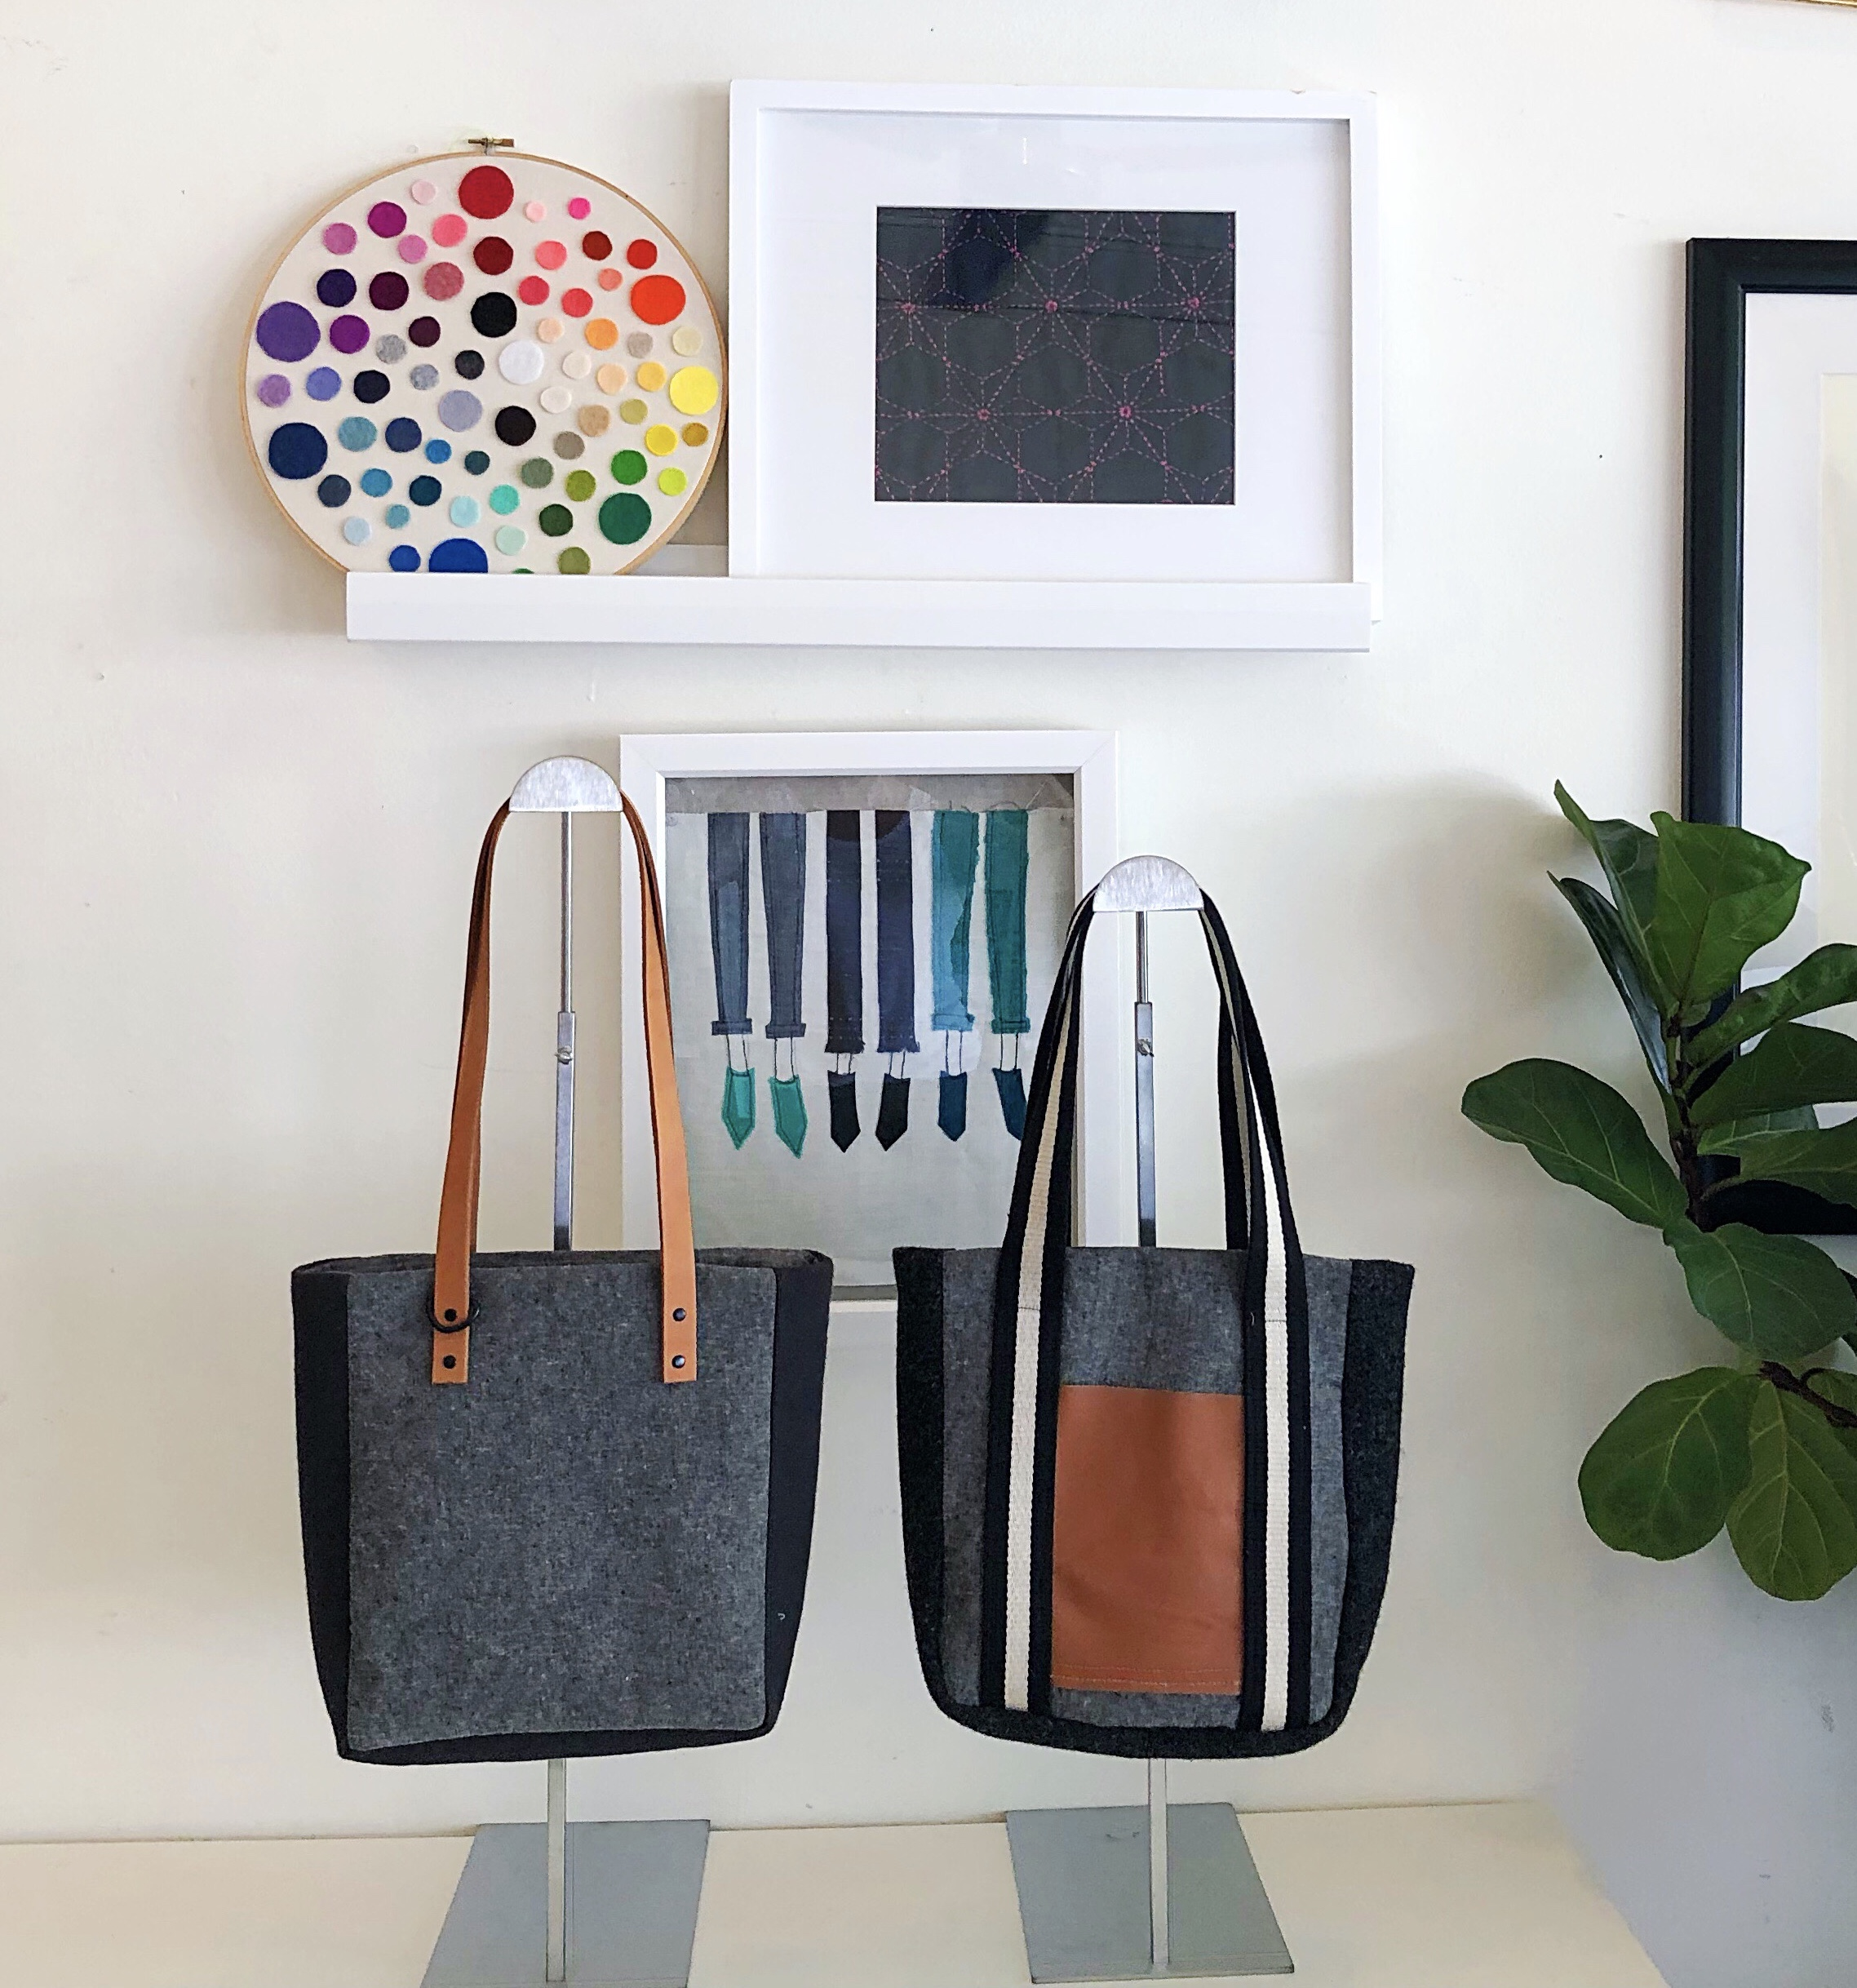 The Heidi Side Panel tote from my book,  Sew Bags: The Practical Guide to Making Purses, Totes, Clutches and More , in two ways. The first, with leather straps set with rivets and extra handy D-ring detail, the second with cotton webbing strap detail and leather front patch pocket.